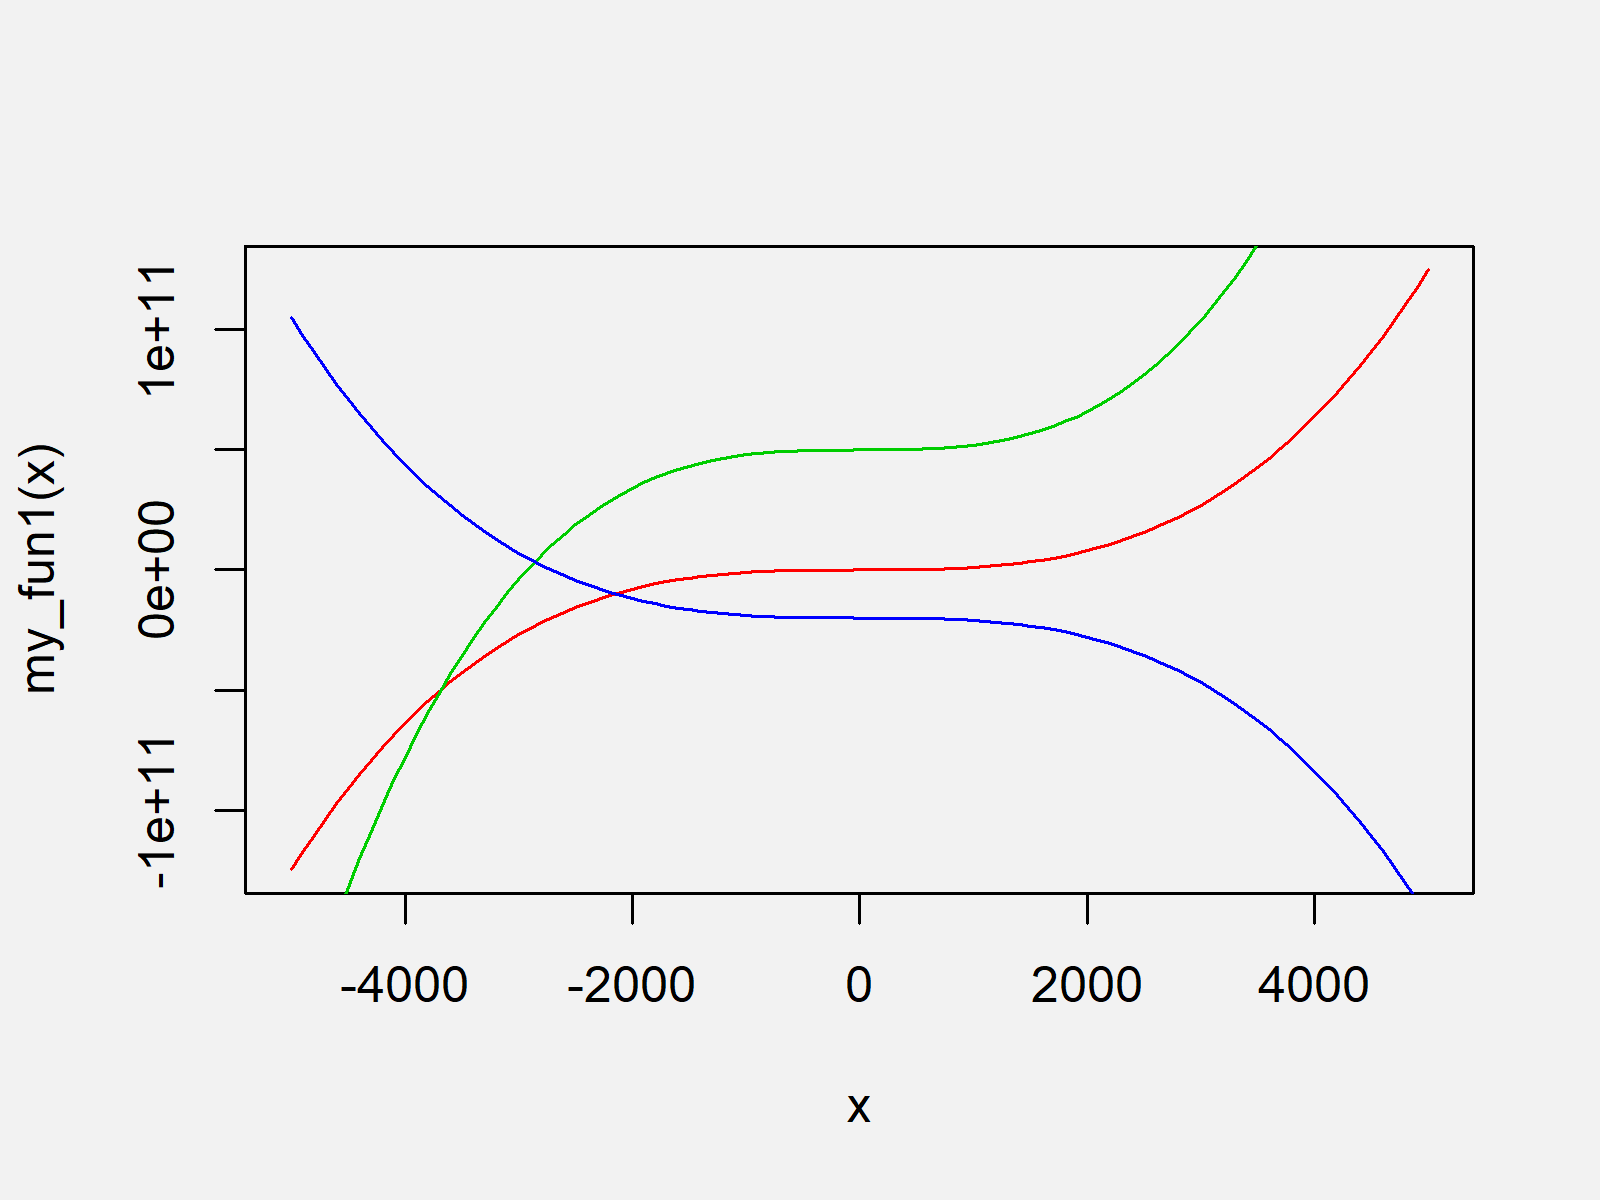 r graph figure 1 draw multiple function curves same r